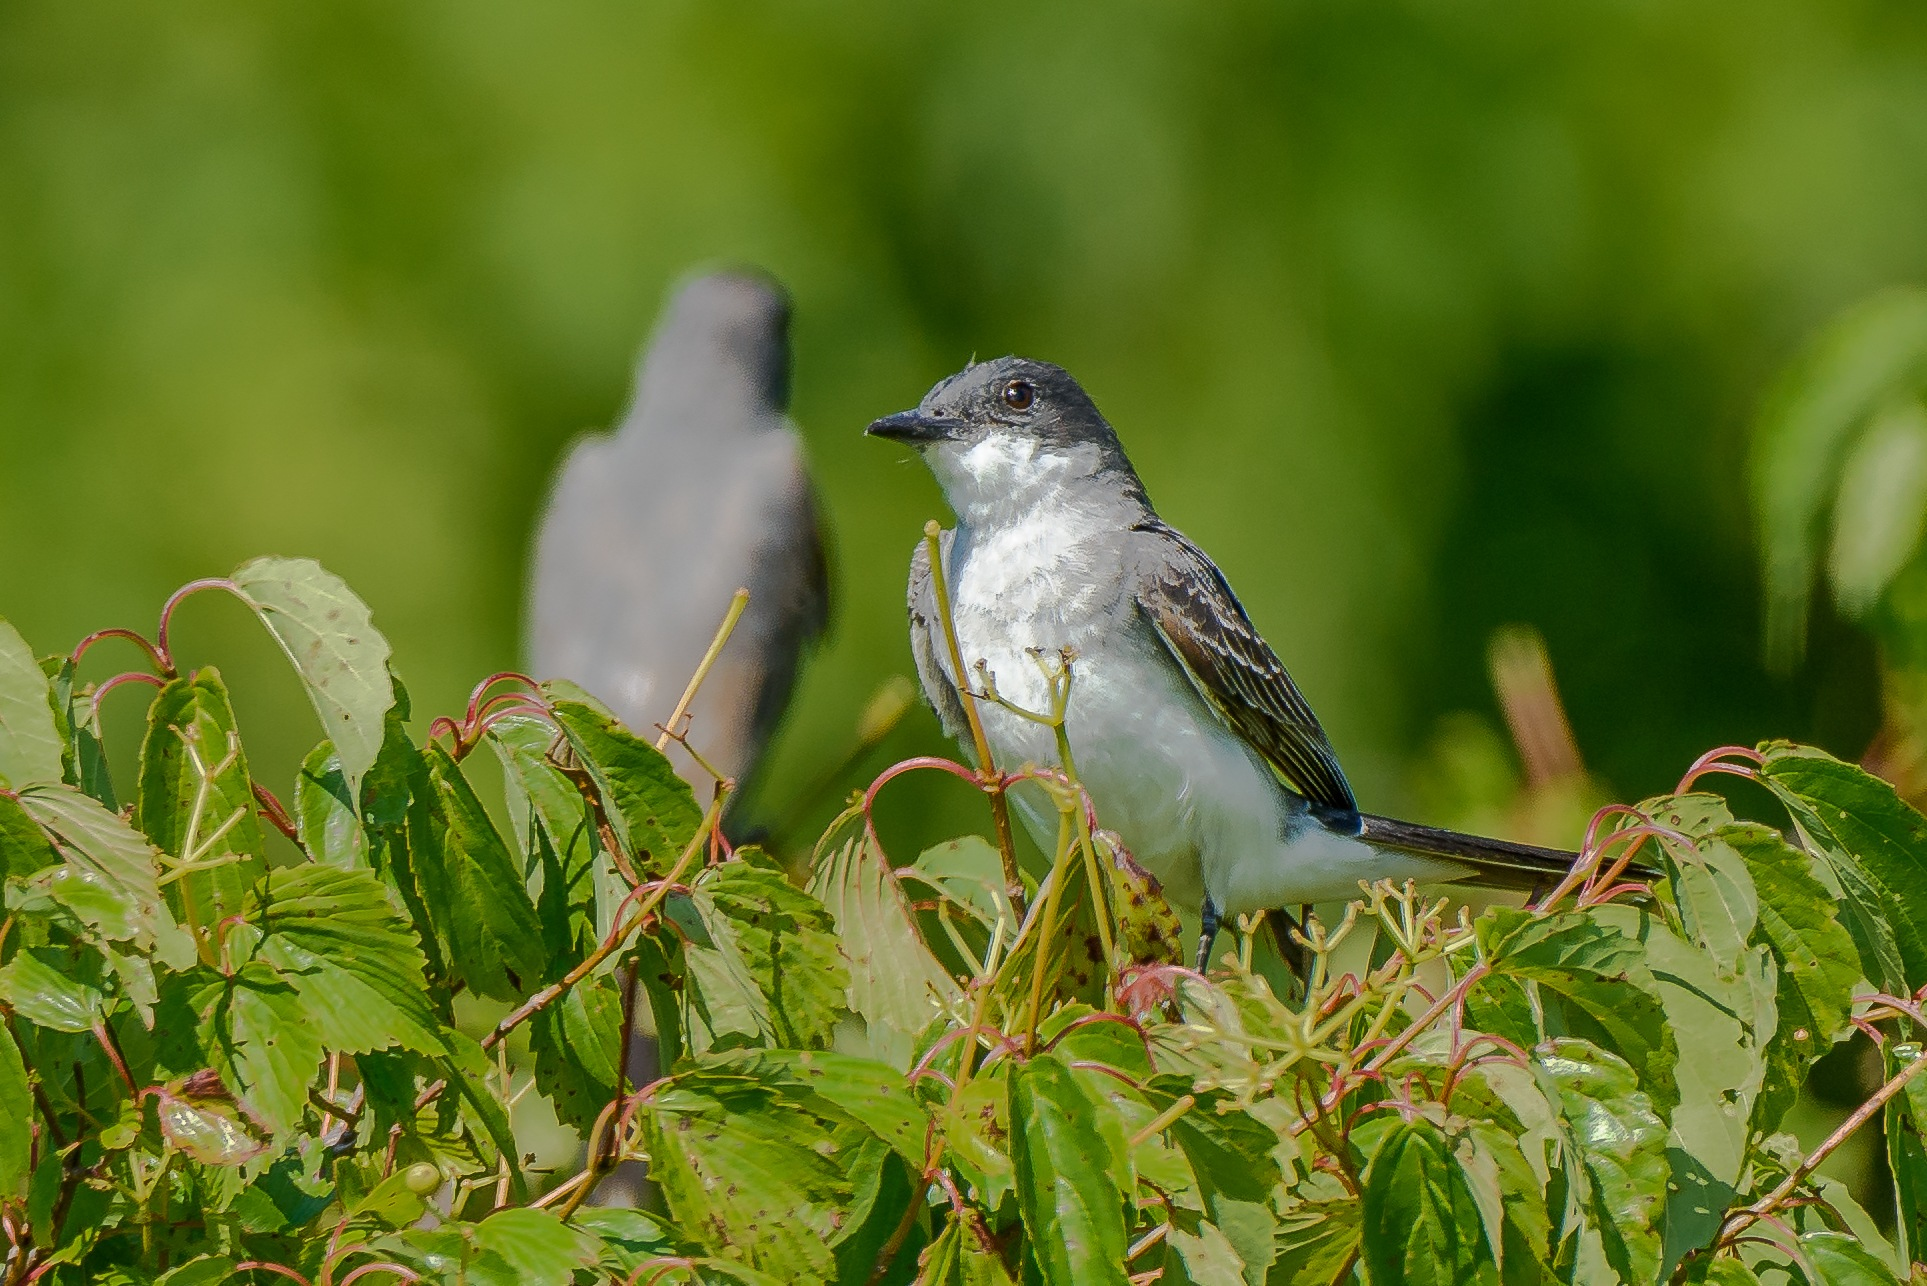 Eastern Kingbird by Steve Director